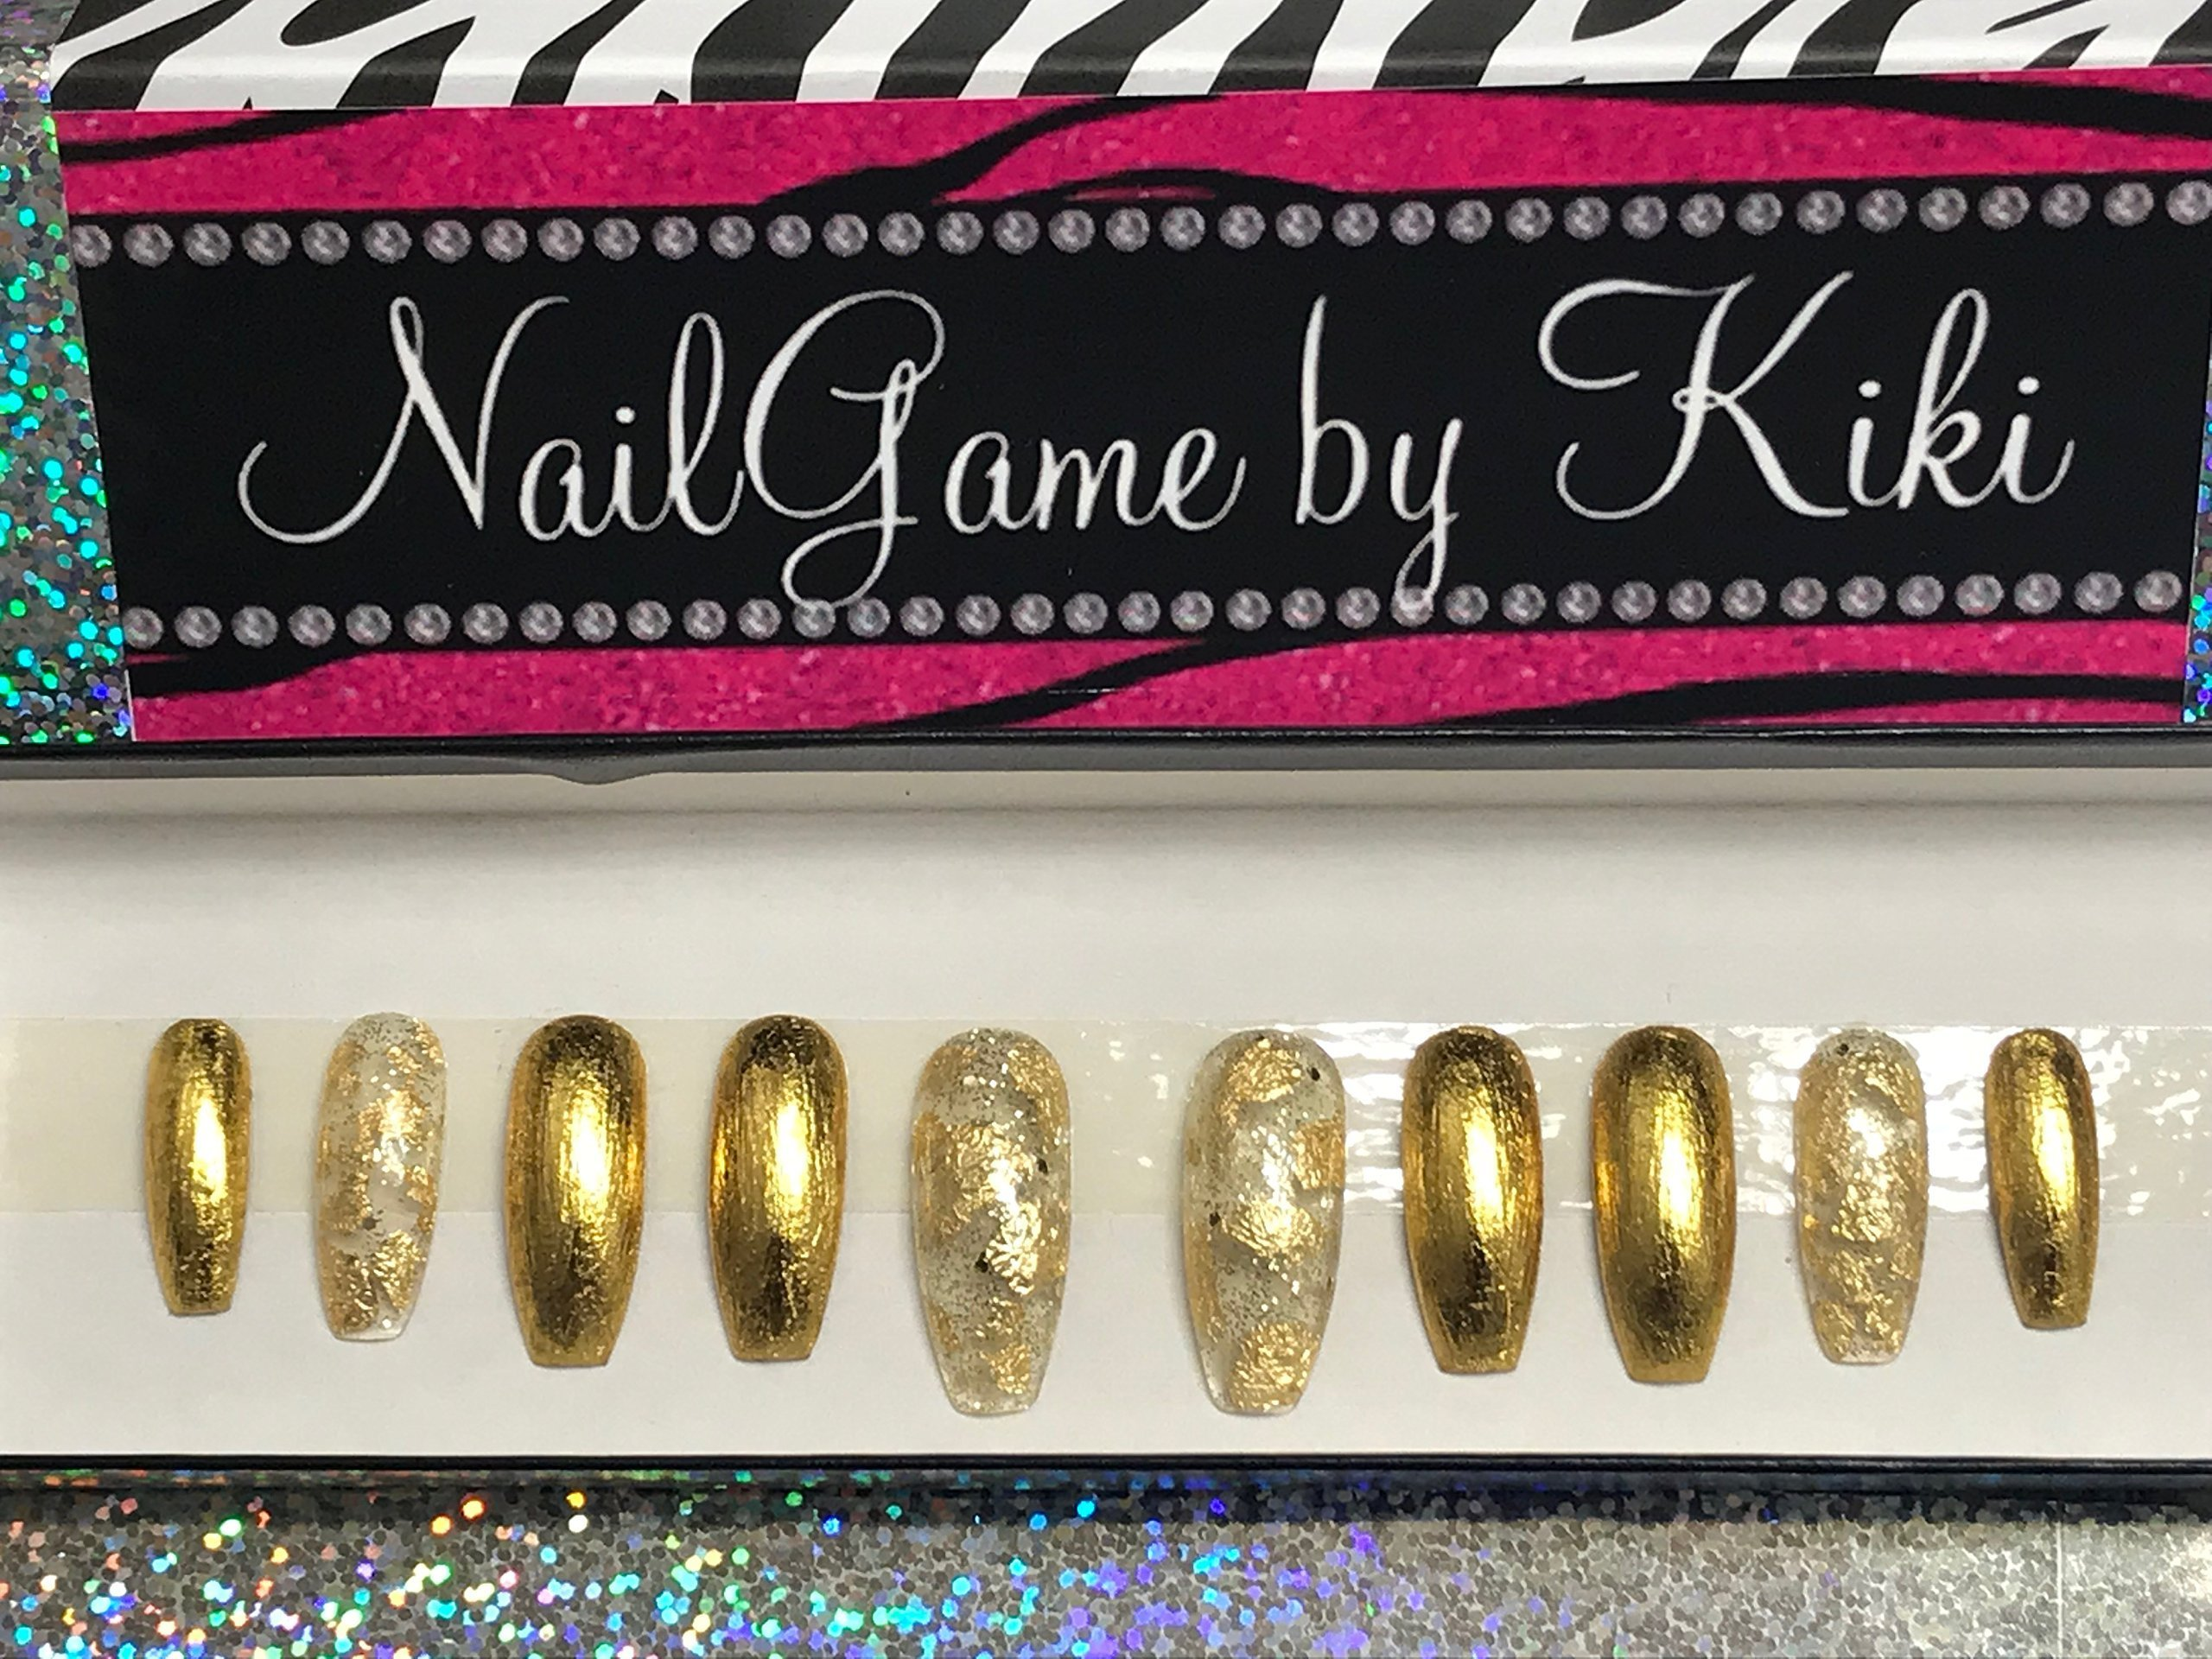 Midas Touch Press on Nails Glue on Nails Fake Nails False Nails Custom Nails Hand Designed Nails Coffin Nails Handmade